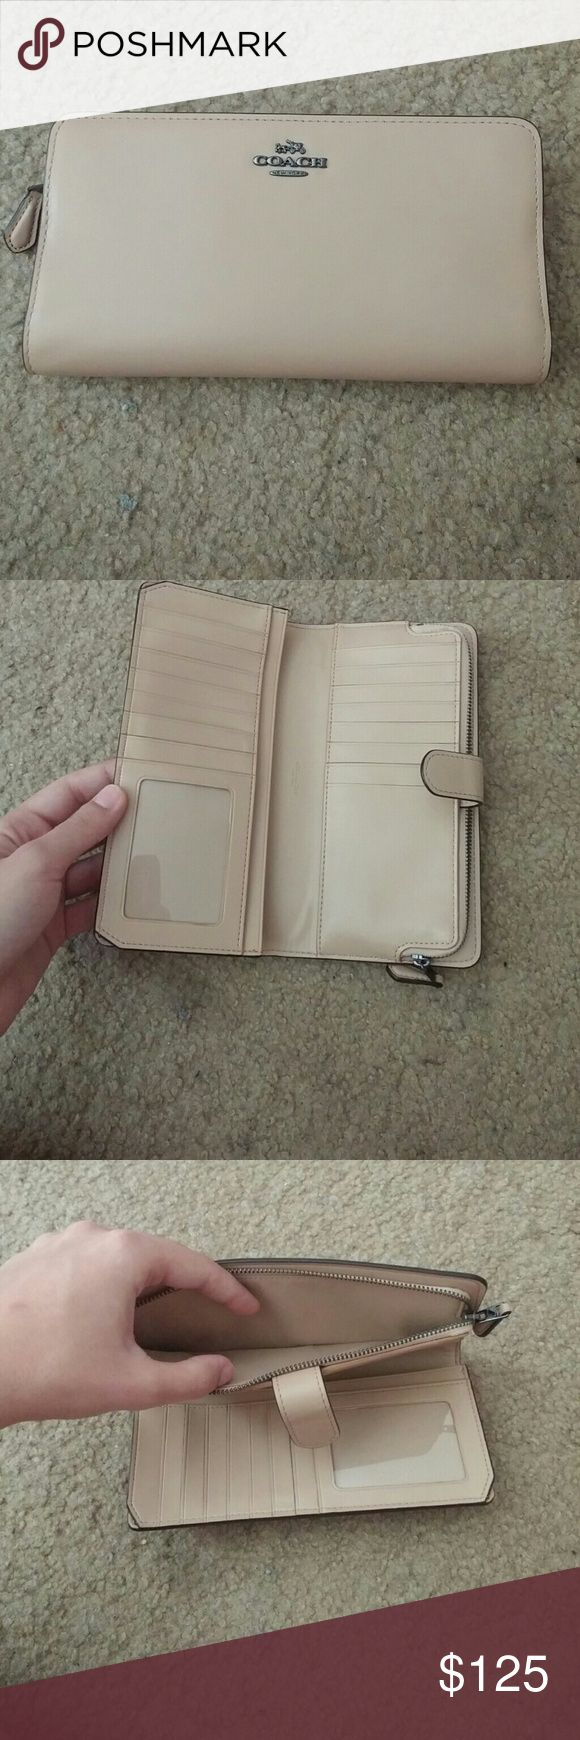 Coach Skinny wallet This color is SOLD OUT online. It has only been used once. Has a lot of space for cards and maybe even your phone. No flaws, smooth calf leather and I have the matching purse too on another listing! Coach Bags Wallets